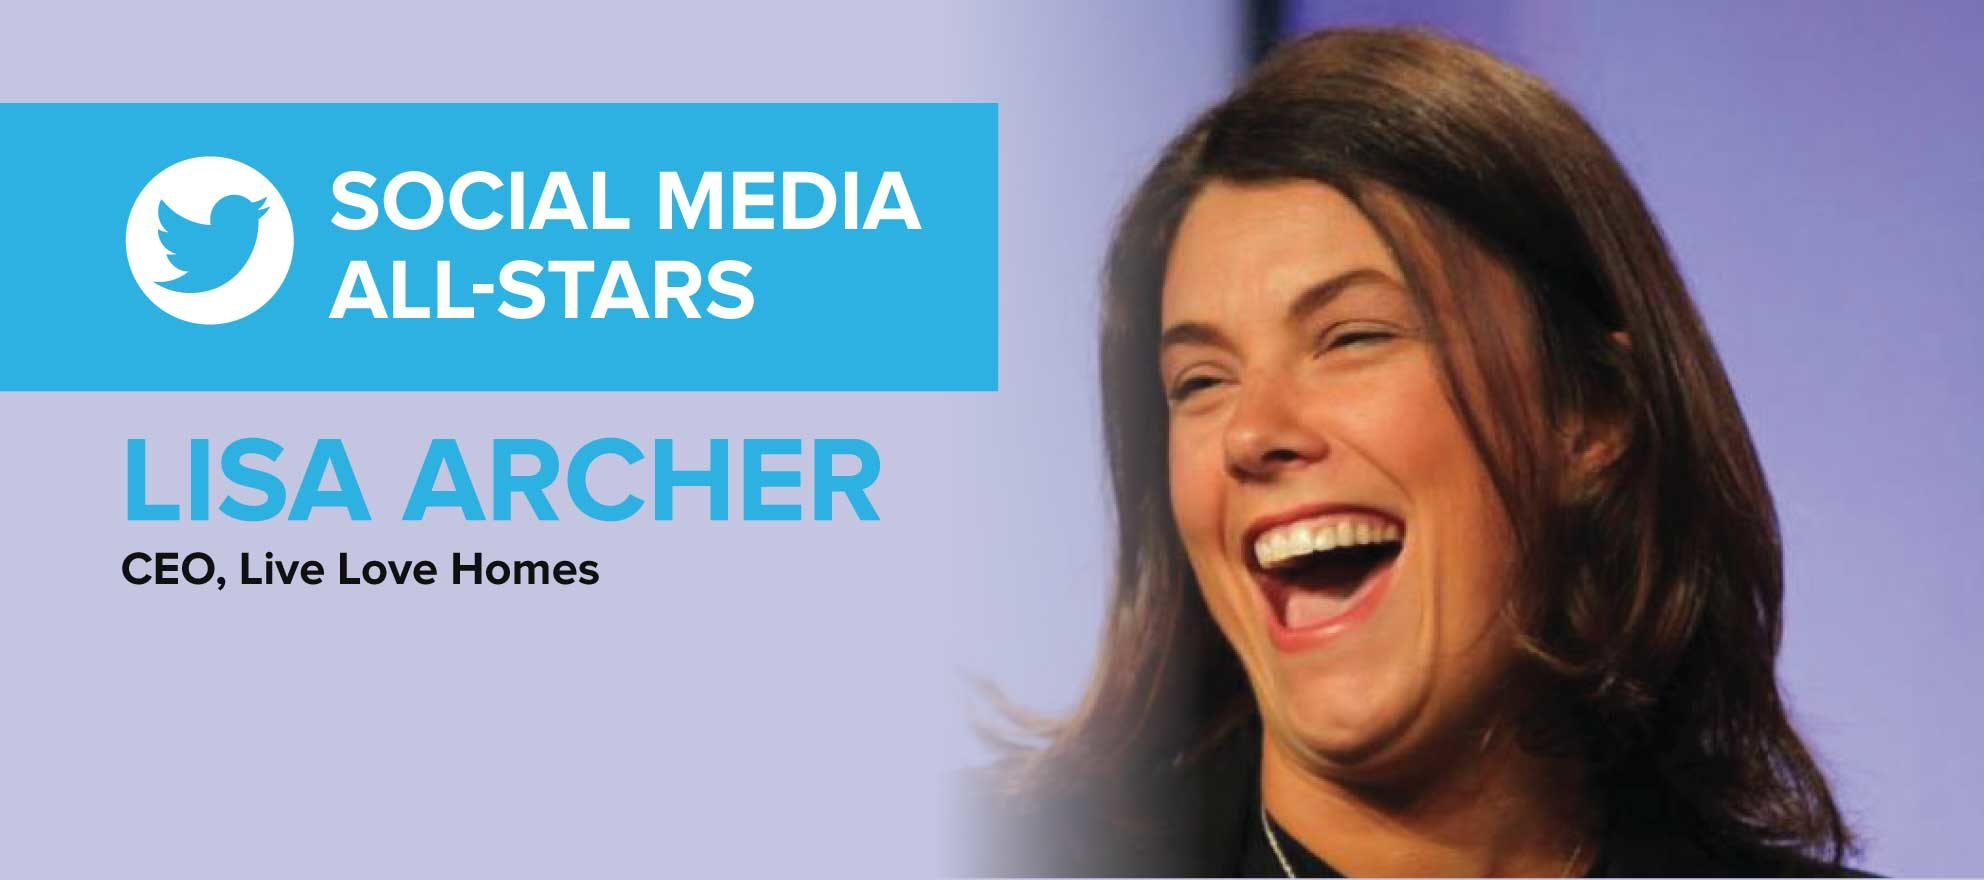 Lisa Archer: 'Social media is about being social. Do that, and the business will come'